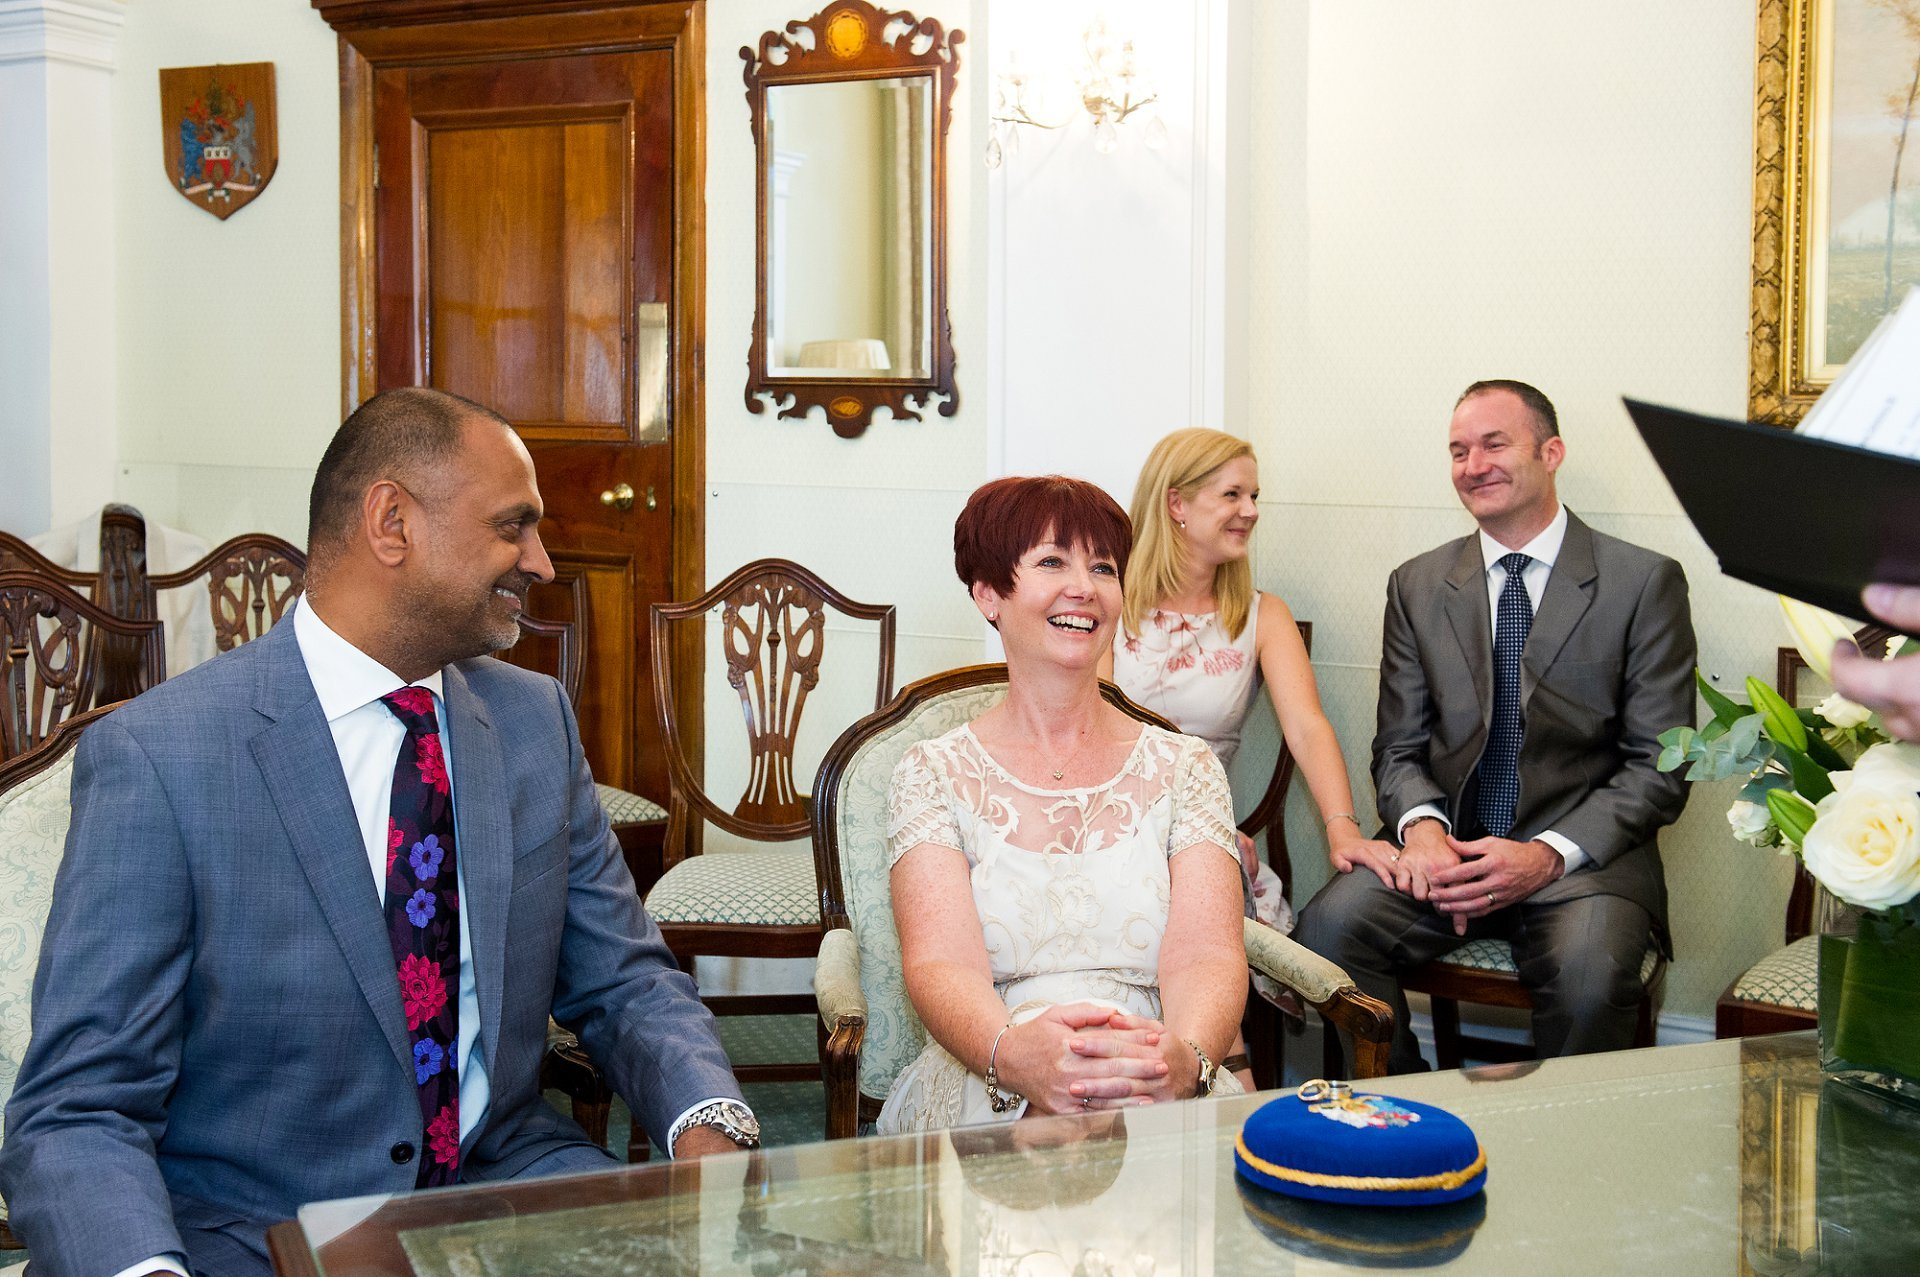 Rossetti Room Chelsea Registry Office is a charming and stylish civil wedding venue and seats up to 12 guests for your civil marriage ceremony. Here the couple and their two guests laugh during the short ceremony